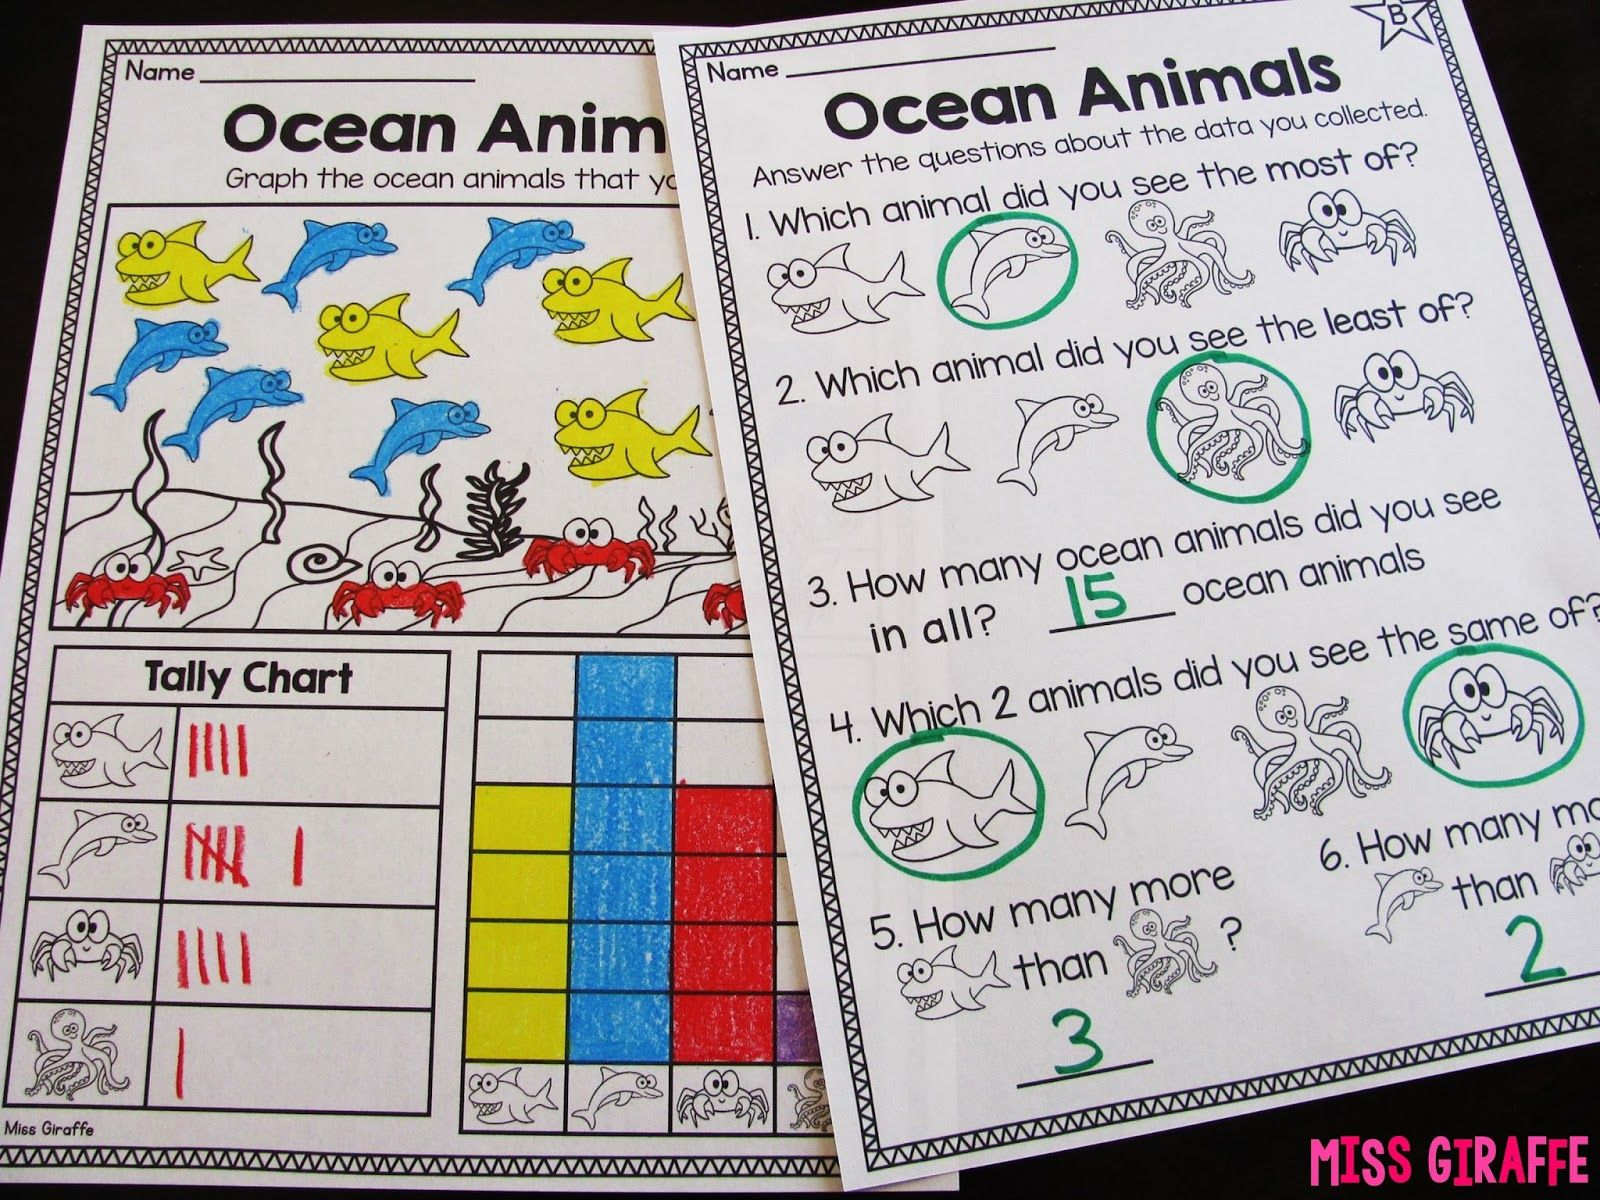 worksheet Graphing Of Data Worksheet Answers oceanbargraphsworksheetlevelbh jpg mathematics graphing and data analysis in first grade can seem daunting but it is actually a really fun math concept because so